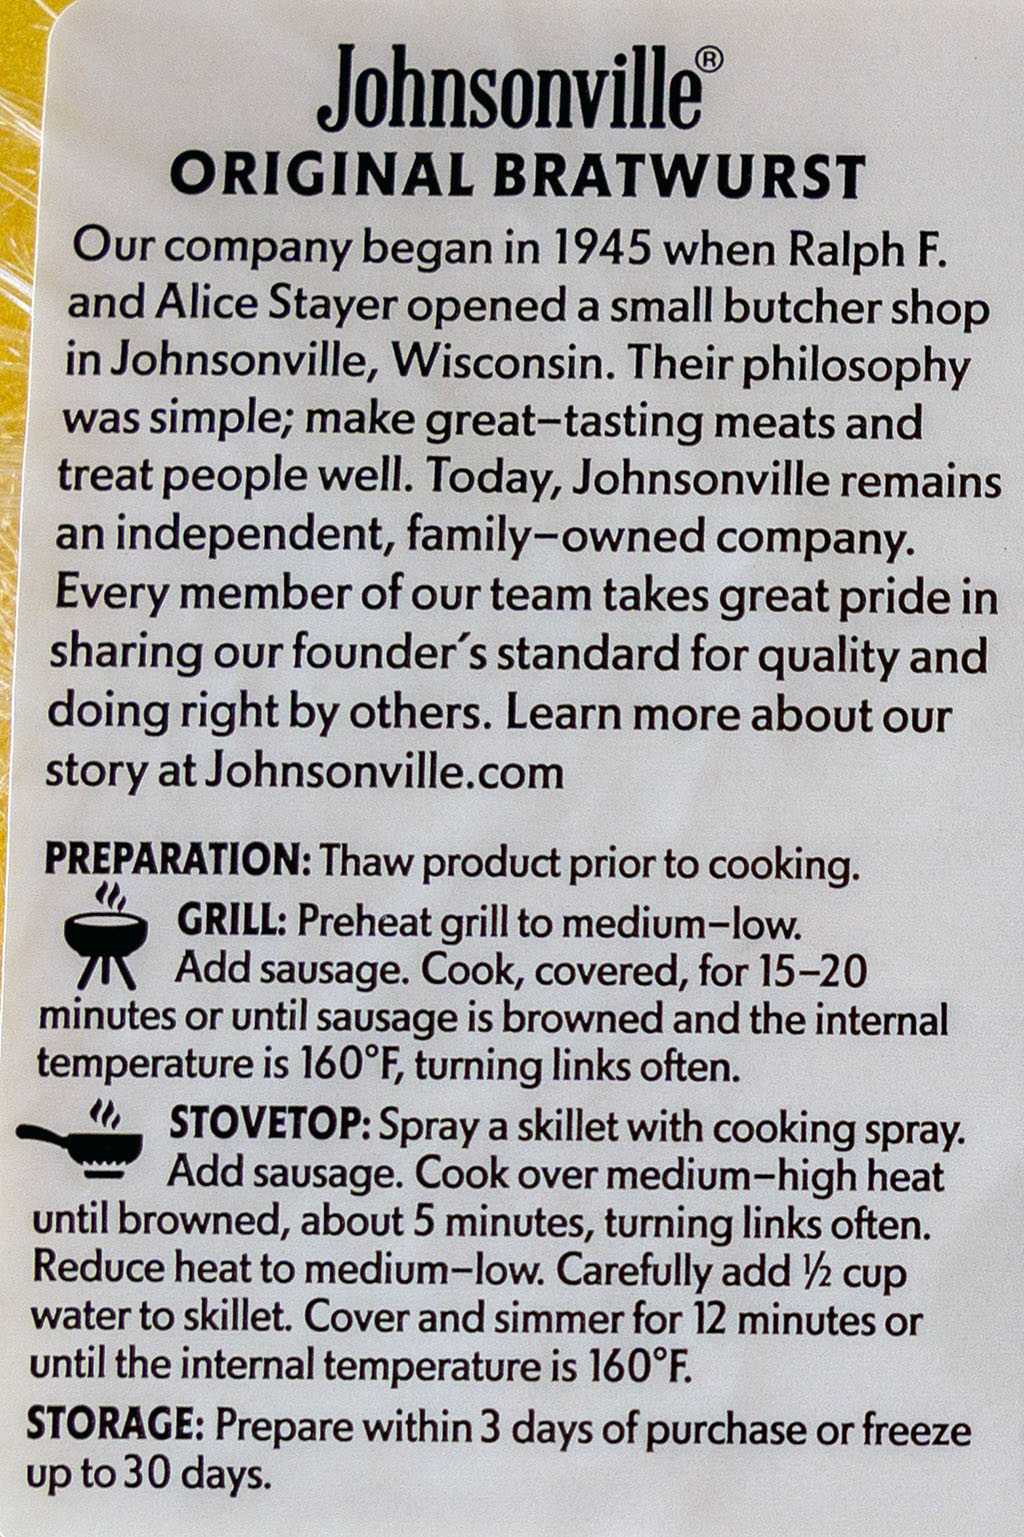 Johnsonville Brats Original - cooking instructions